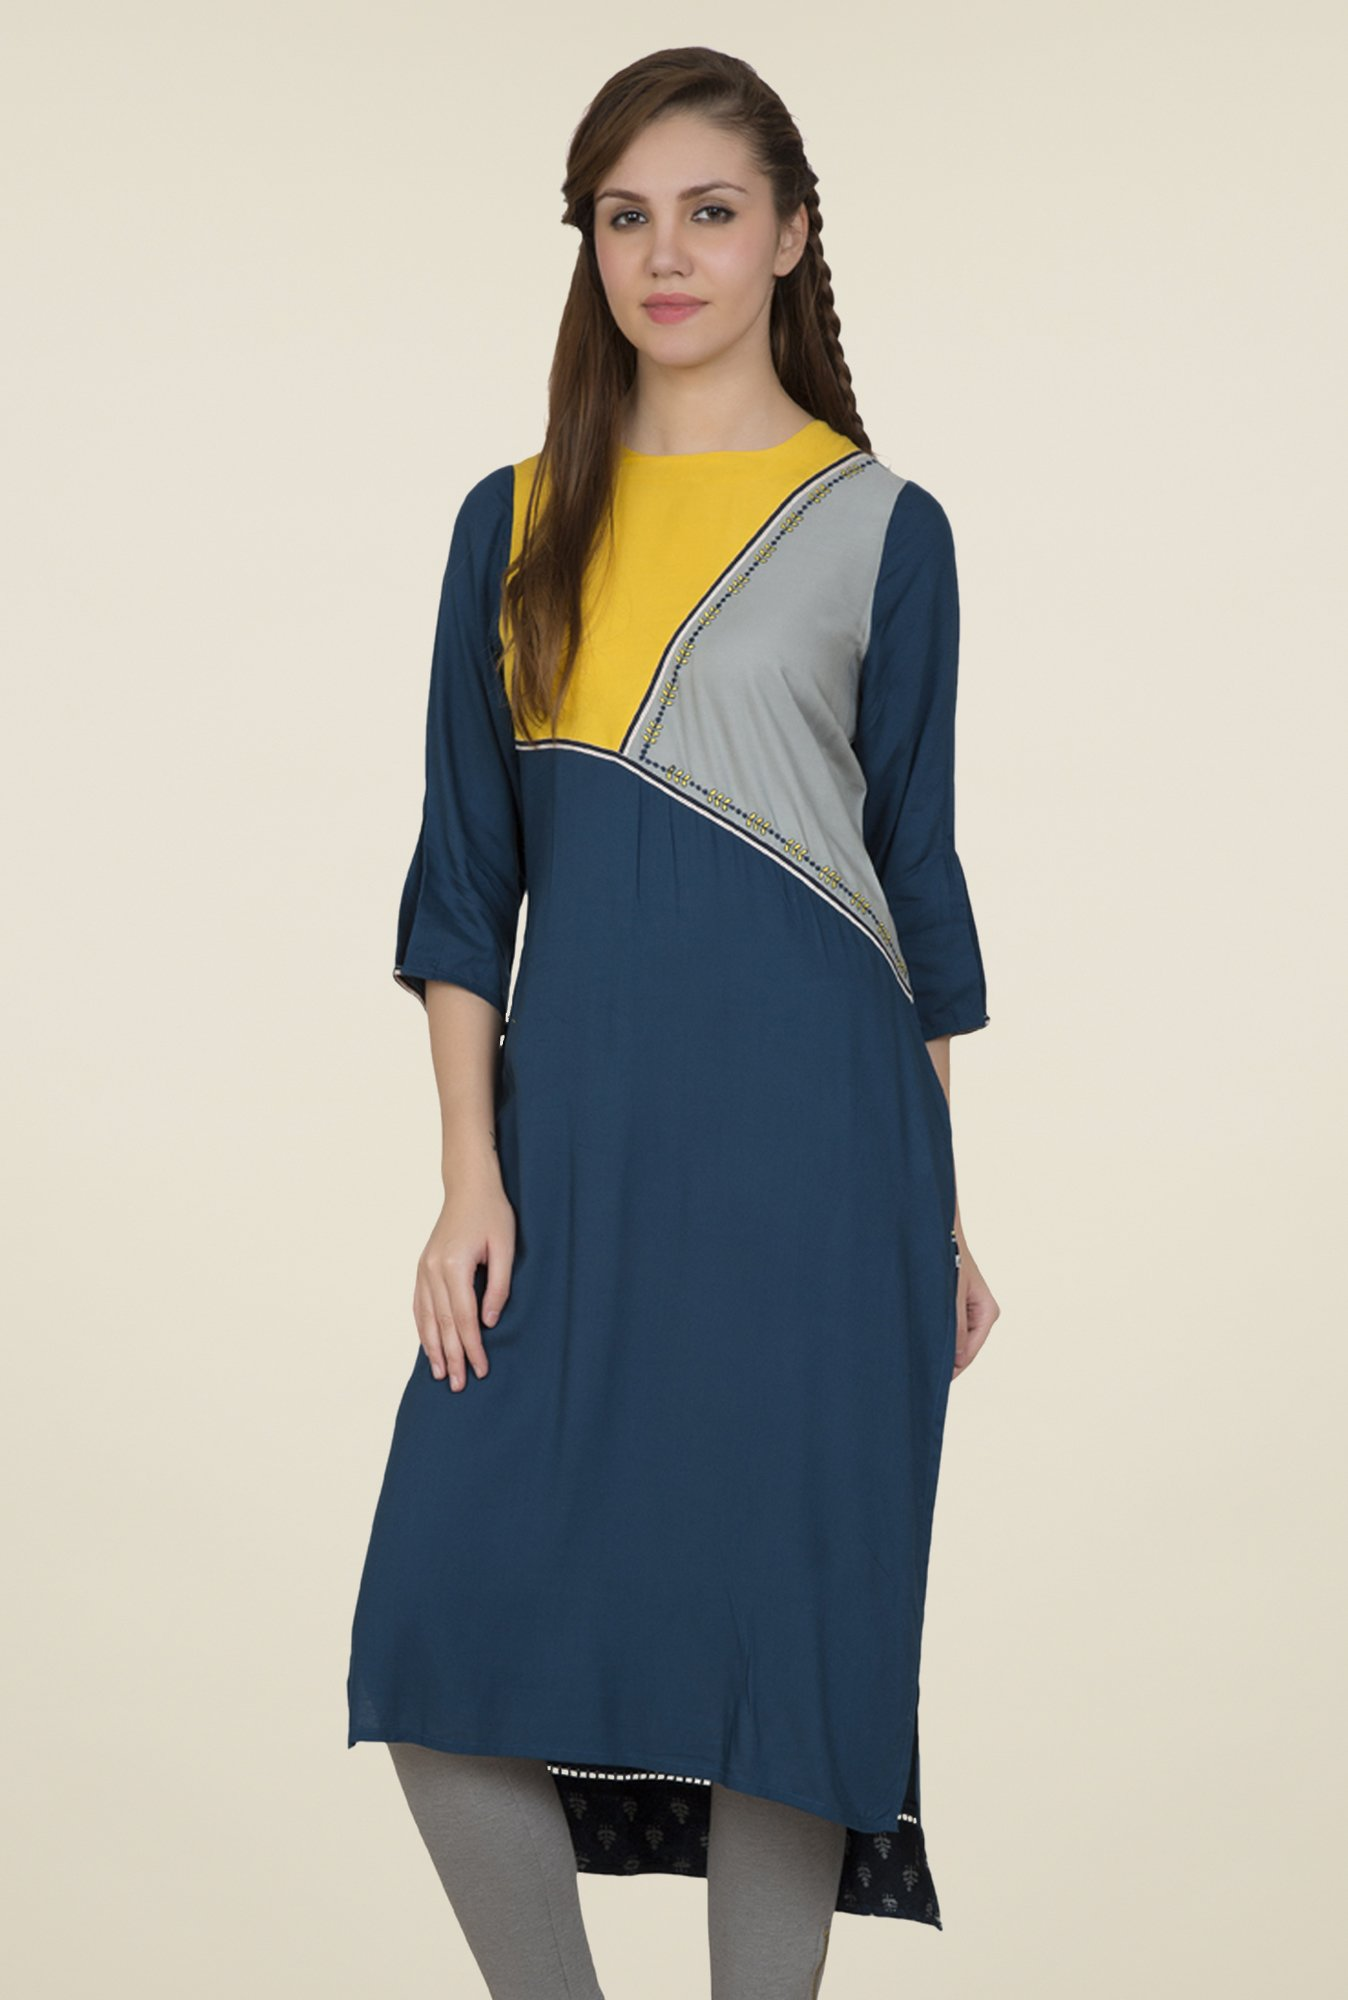 Desi Belle Blue Embroidered Kurti